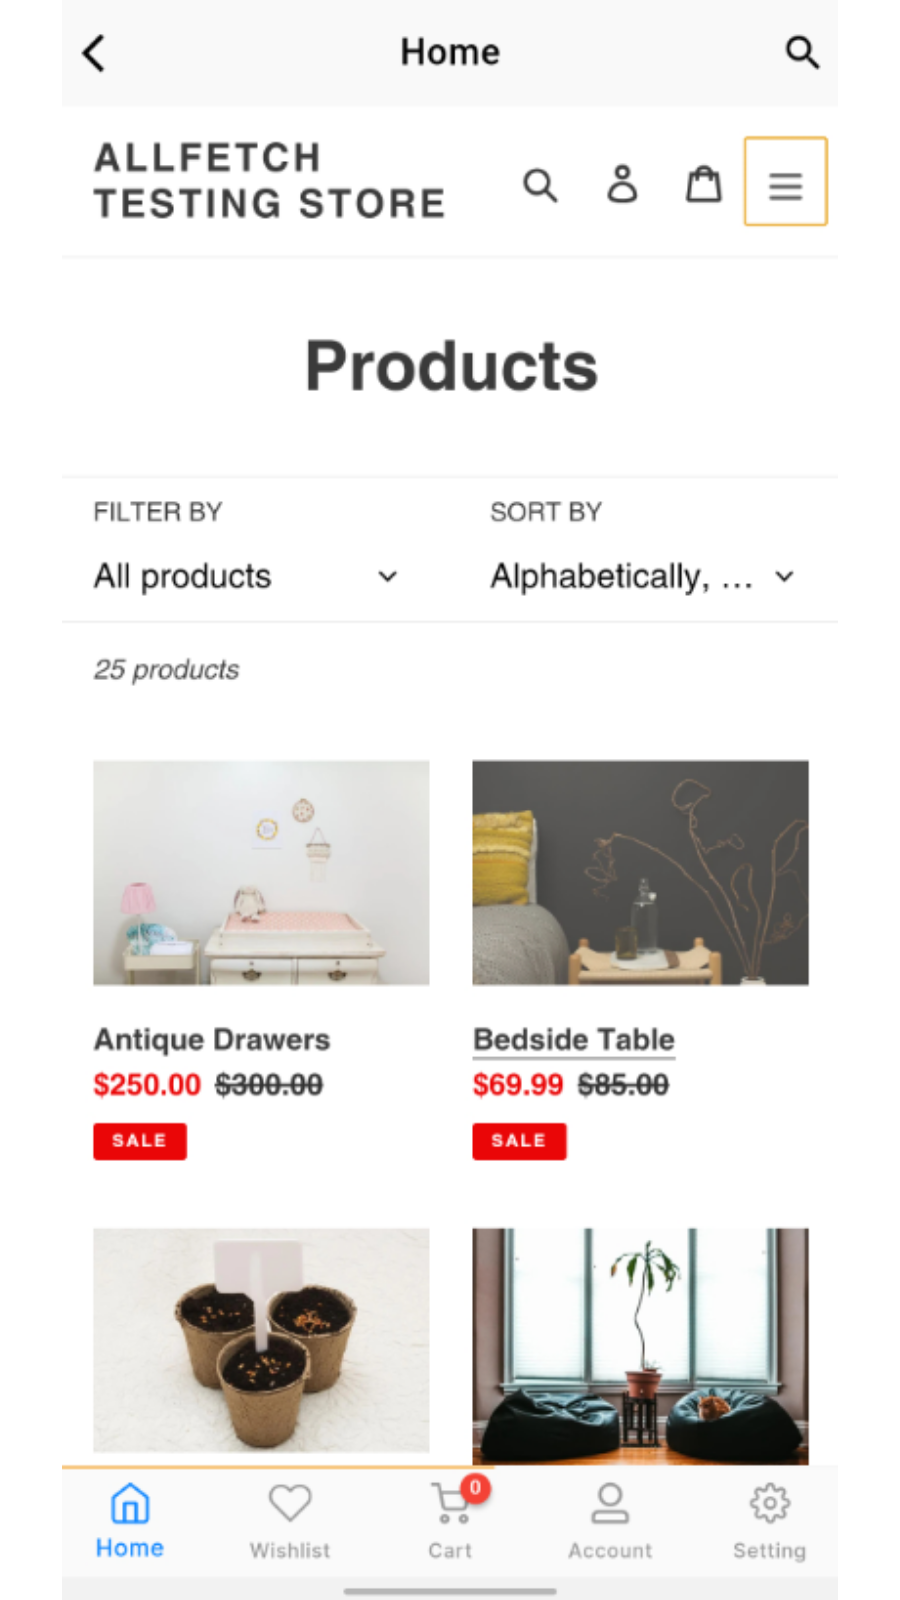 Mobile app - Catalog page